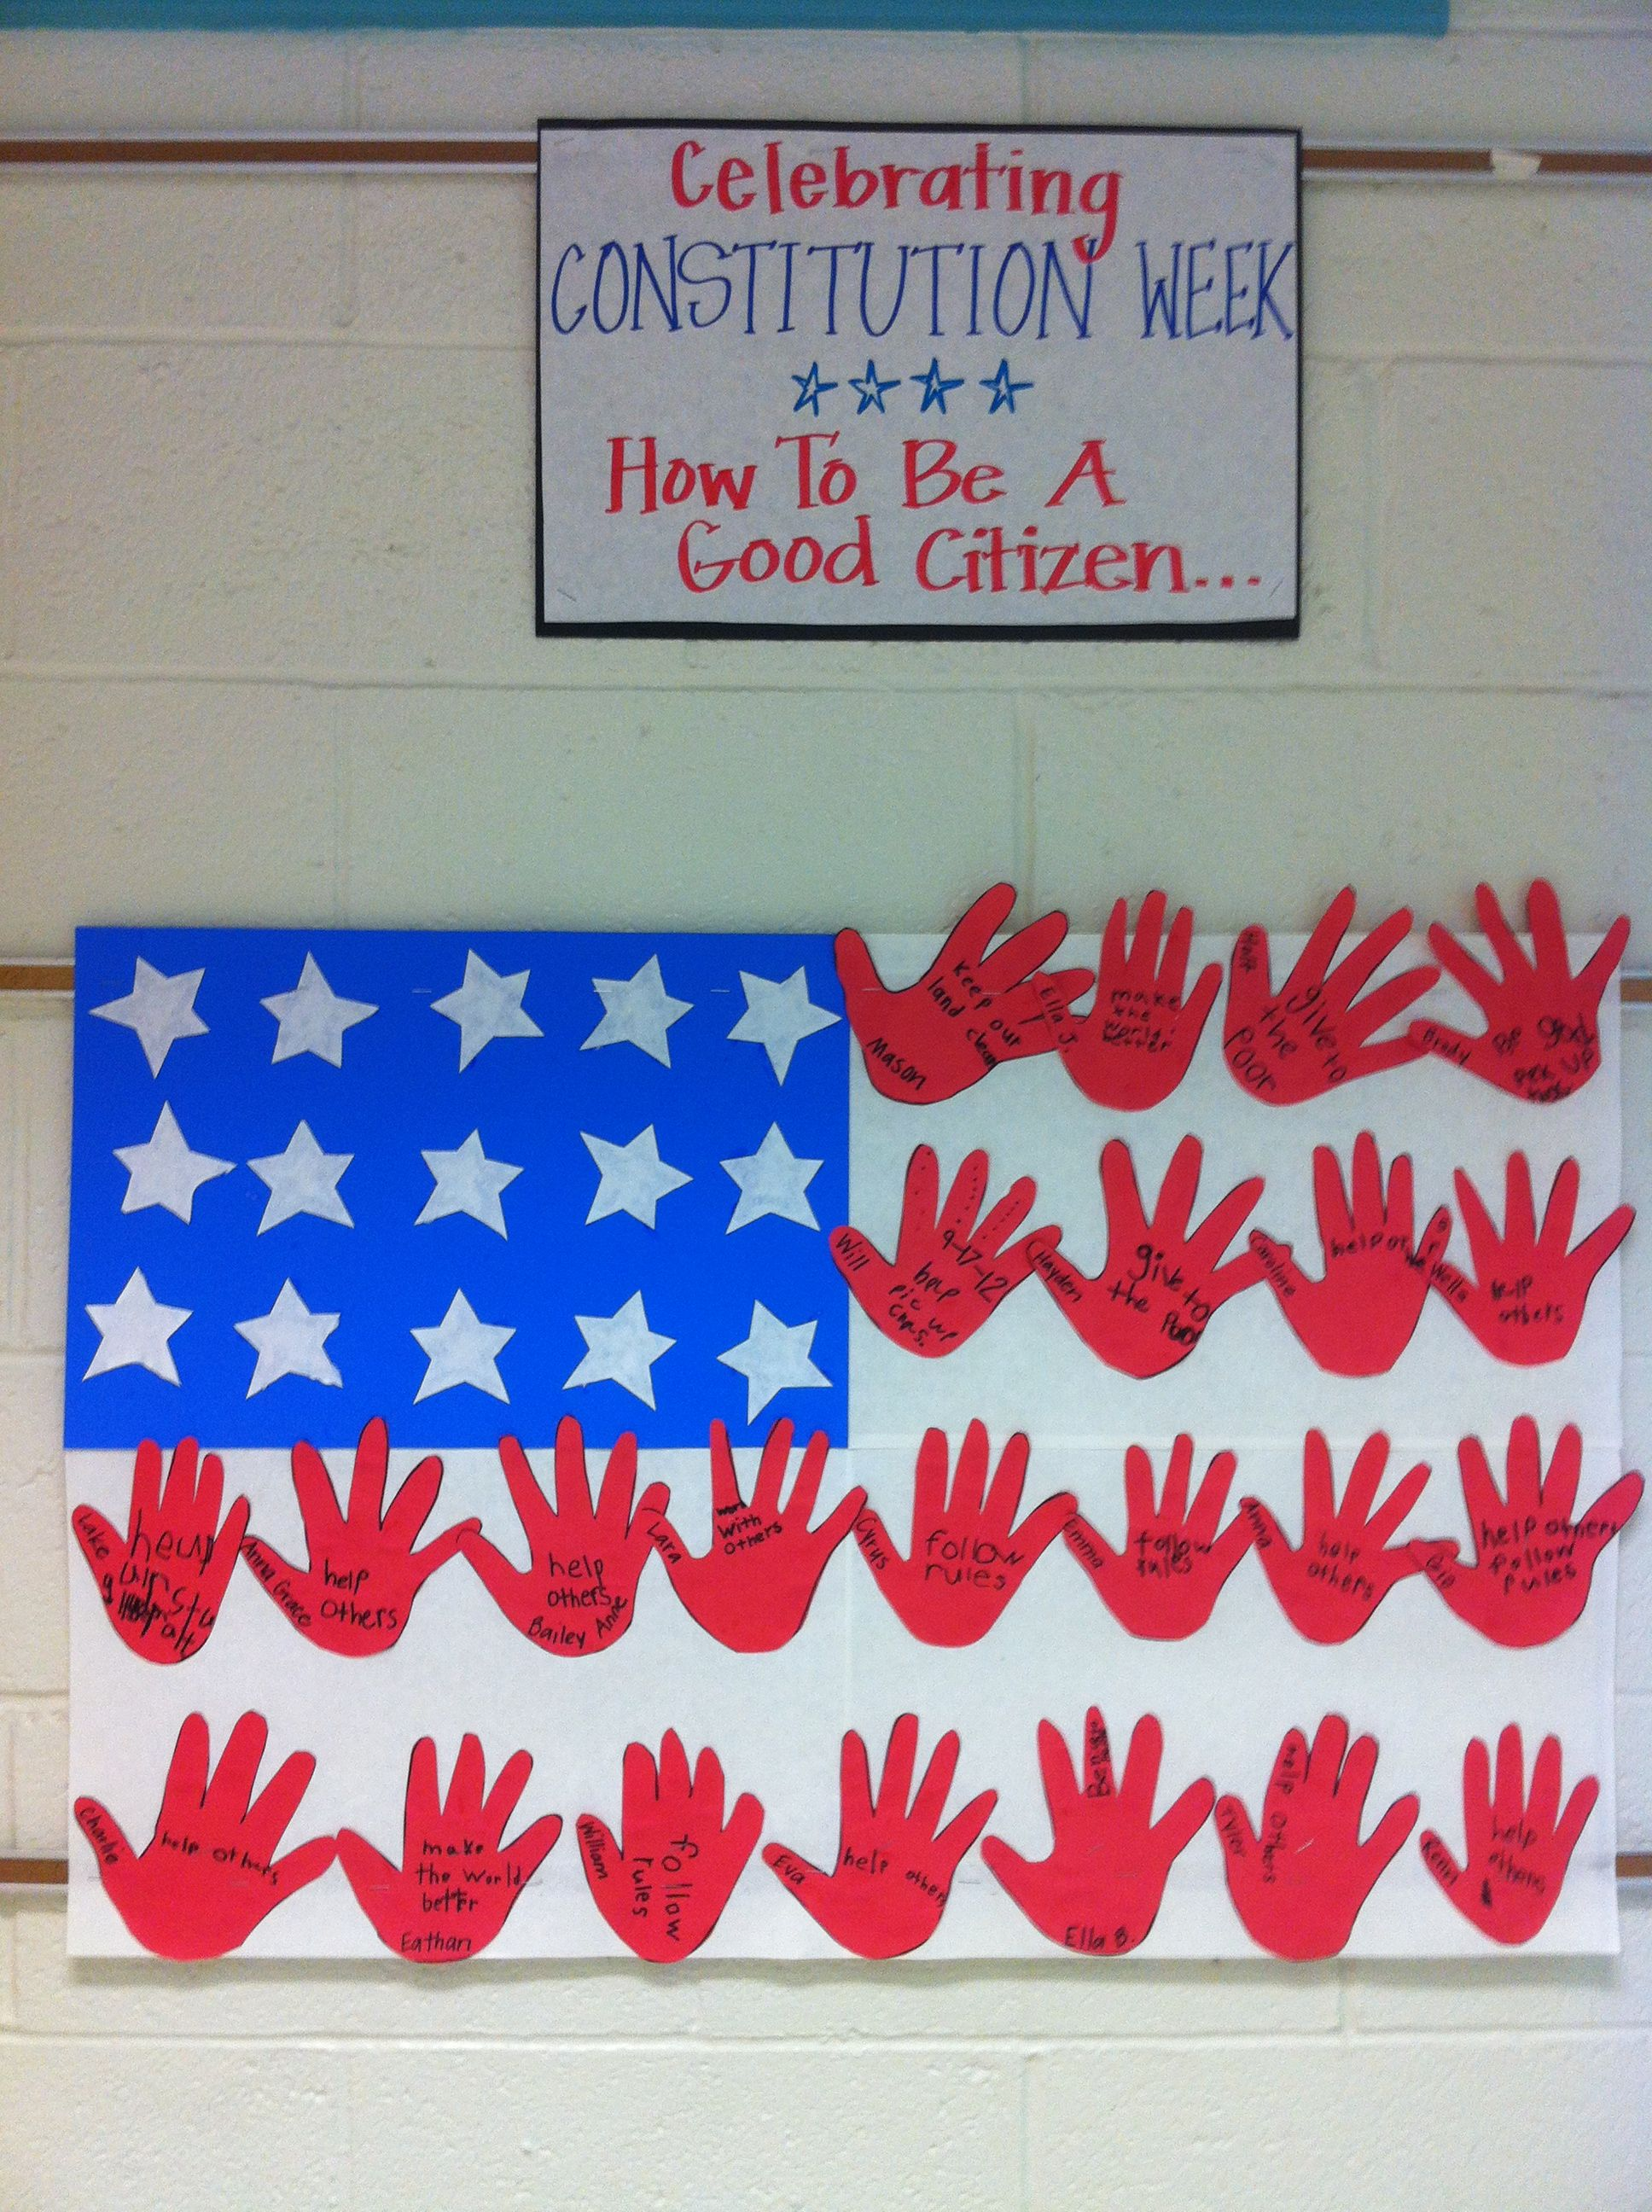 Celebrating Constitution Week To Be A Good Citizen